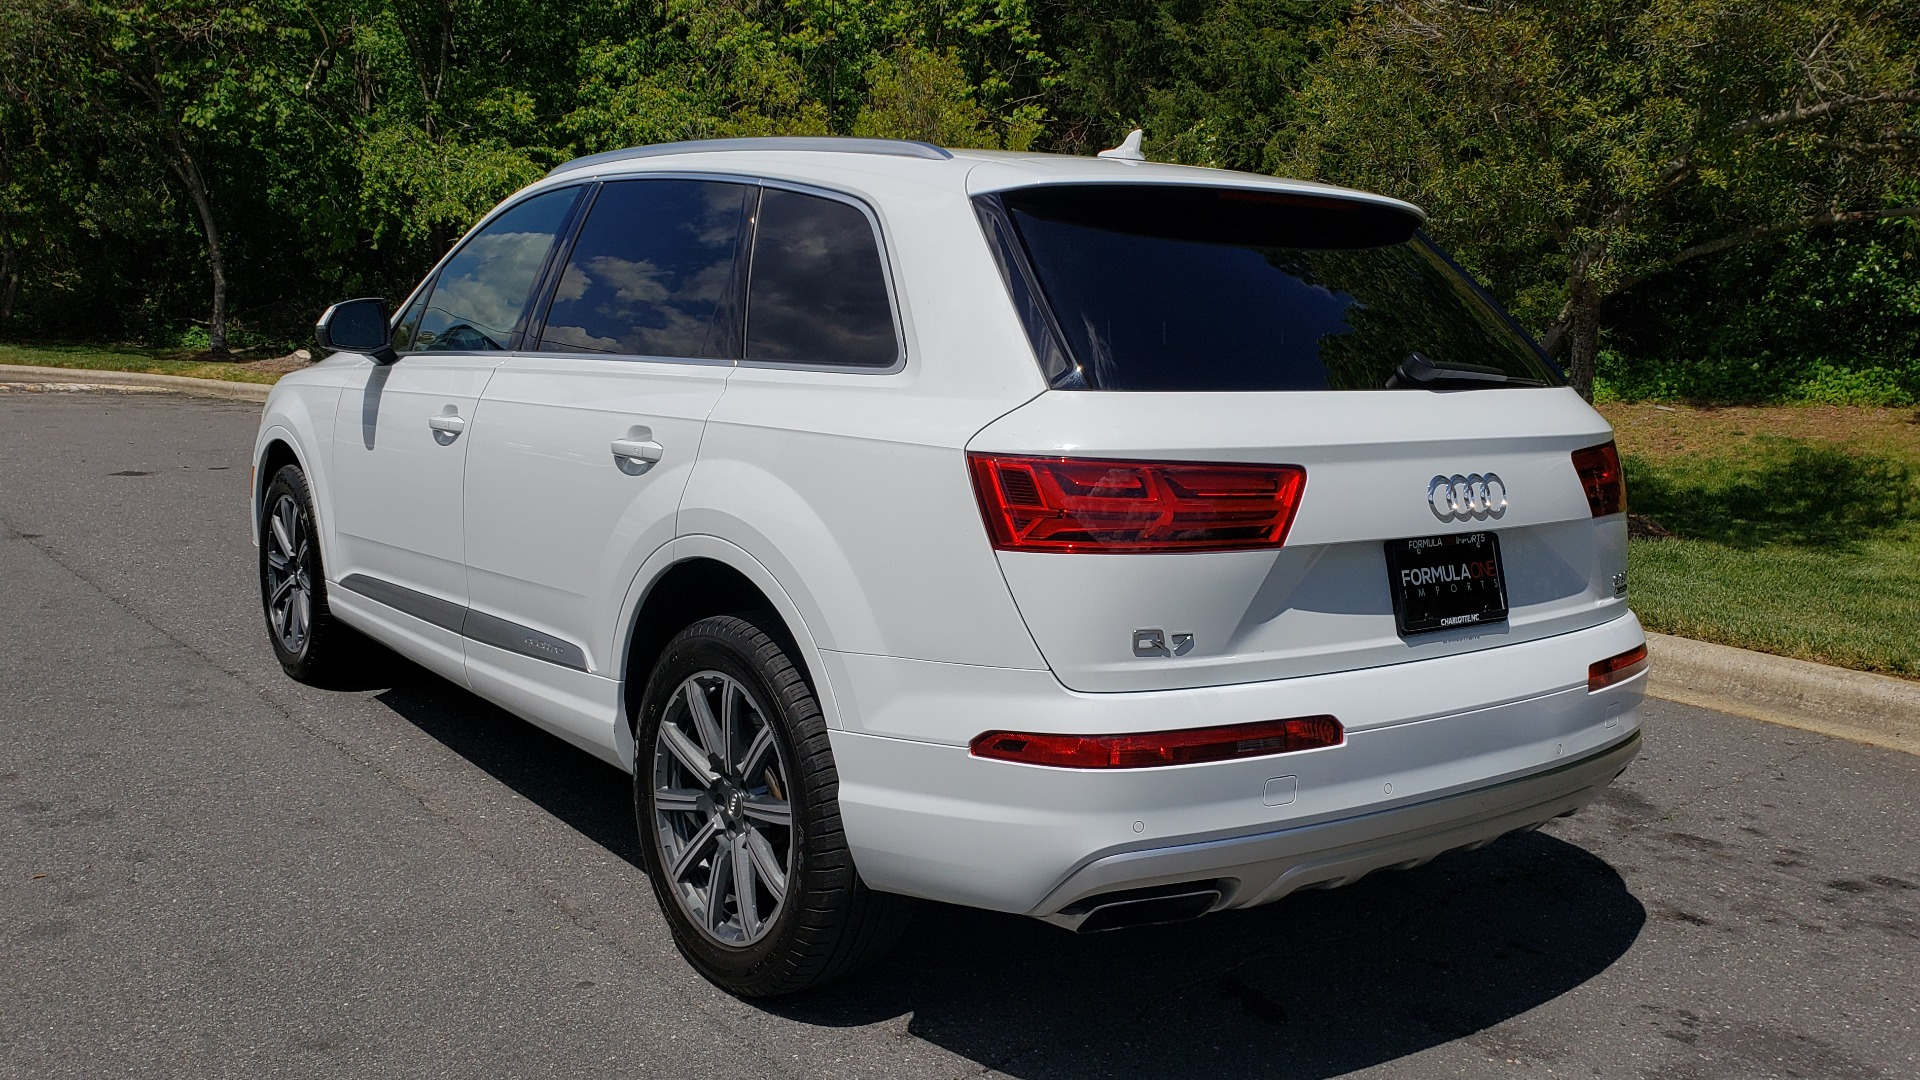 Used 2017 Audi Q7 PREMIUM PLUS / VISION PKG / NAV / PANO-ROOF / 3-ROW / REARVIEW for sale Sold at Formula Imports in Charlotte NC 28227 3